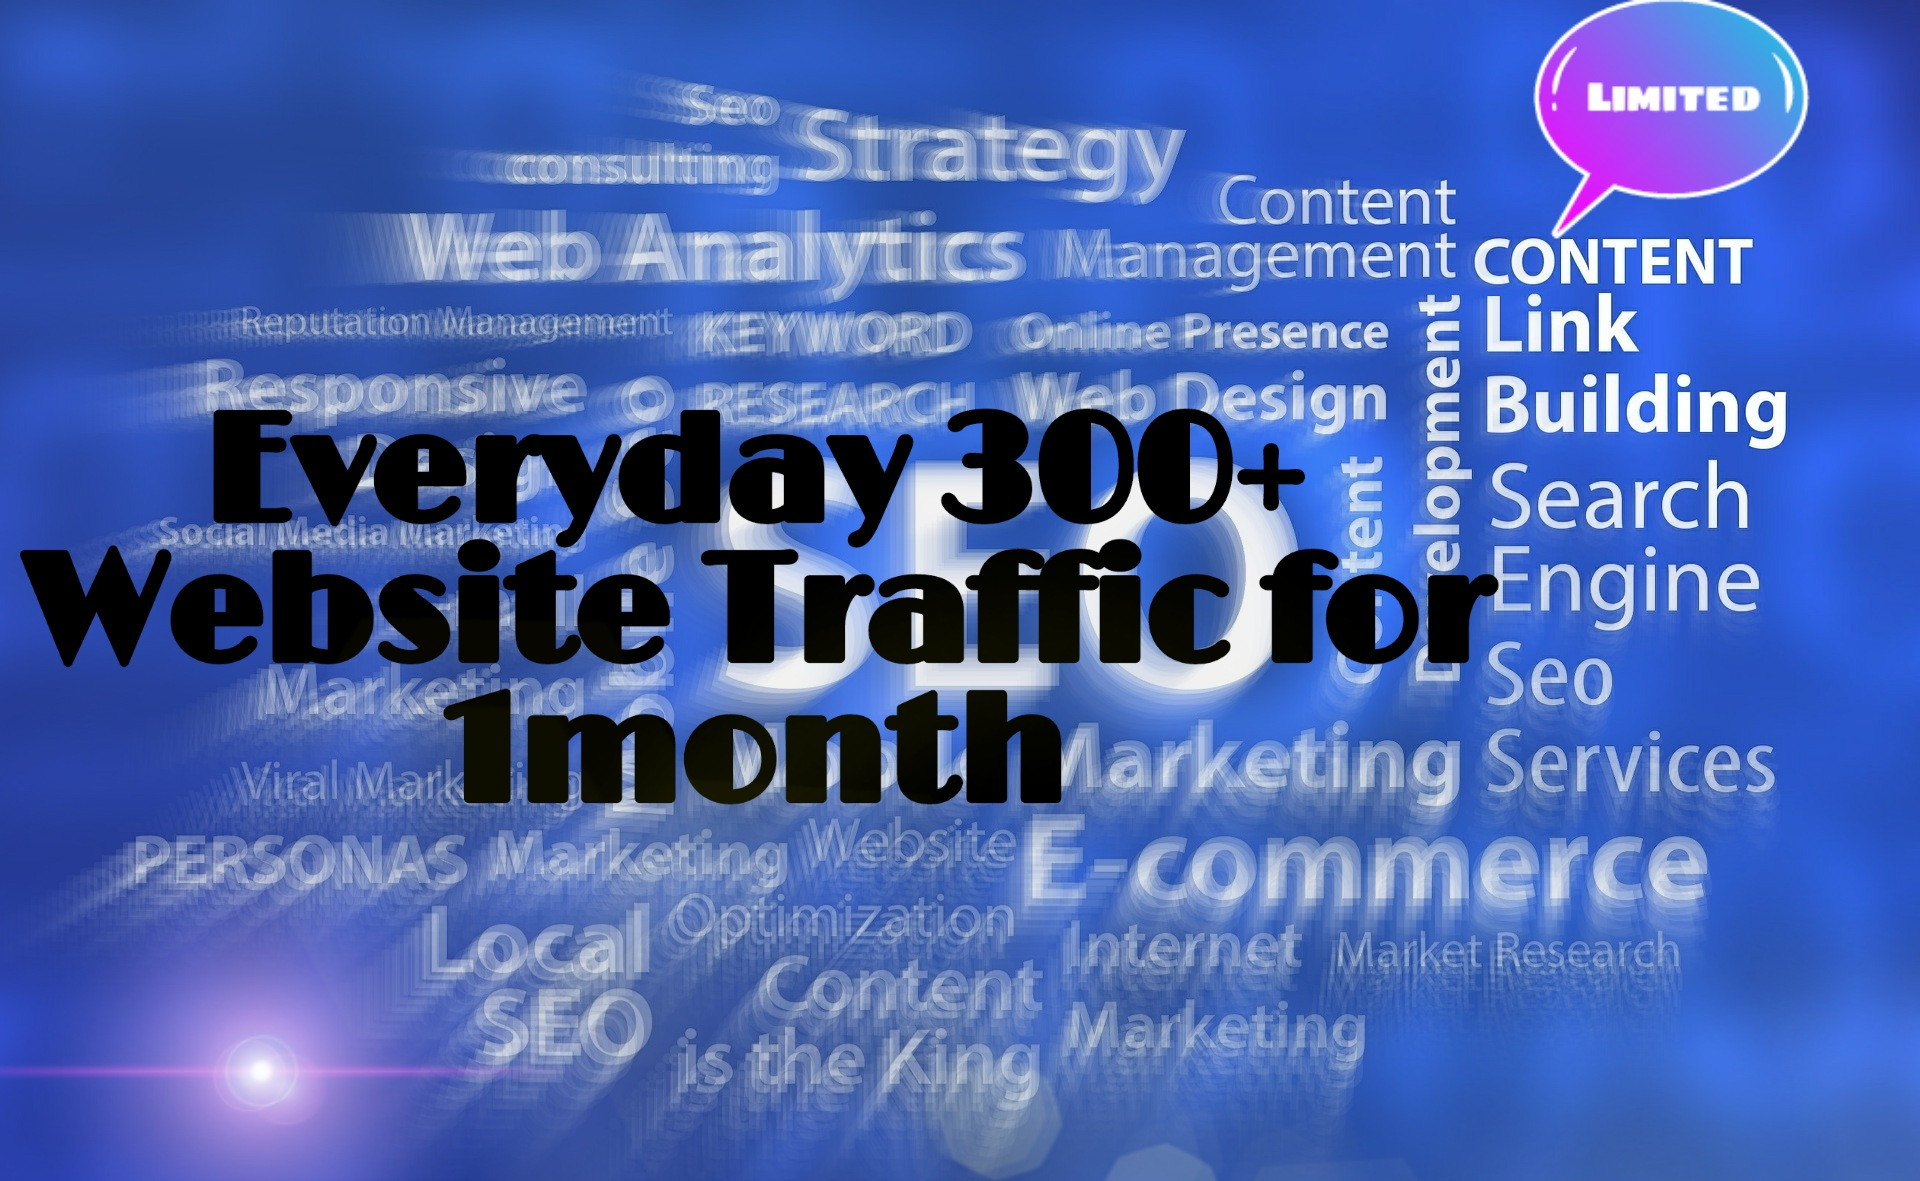 UNLIMITED and genuine real Website TRAFFIC for a month 300+ DAILY VISITORS